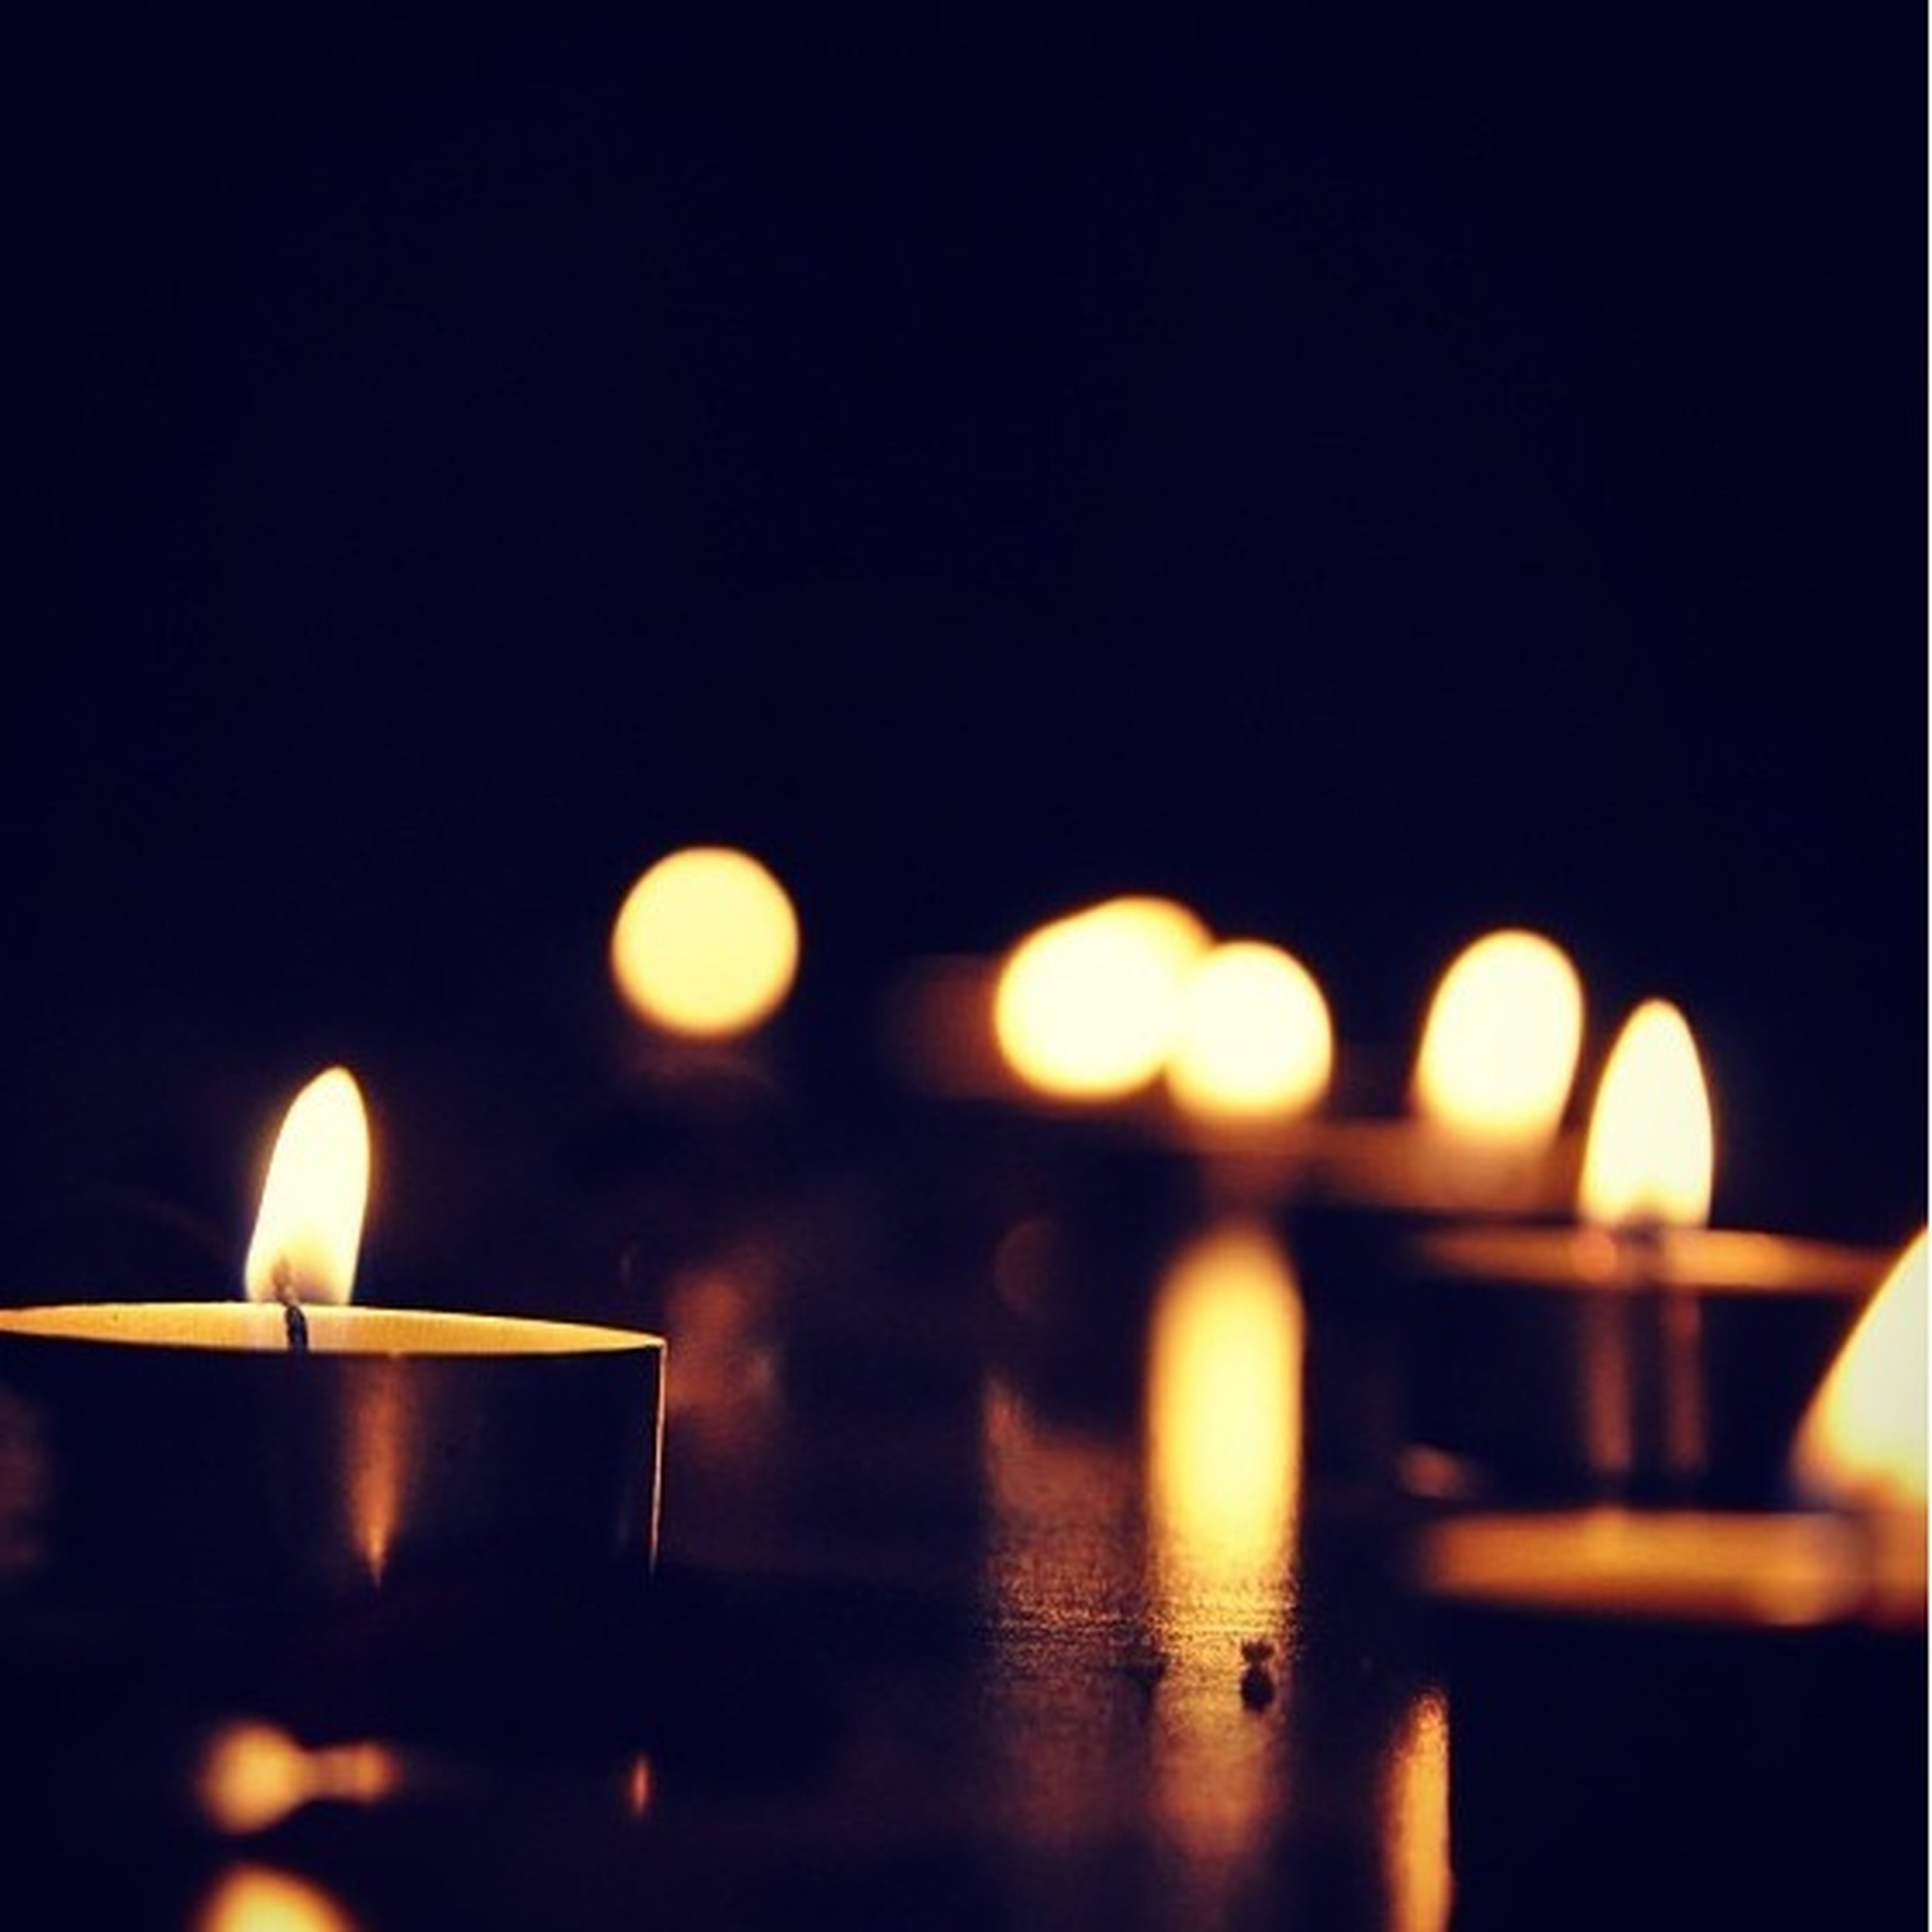 flame, burning, illuminated, indoors, candle, glowing, lit, heat - temperature, candlelight, table, fire - natural phenomenon, dark, in a row, copy space, close-up, reflection, light - natural phenomenon, still life, night, darkroom